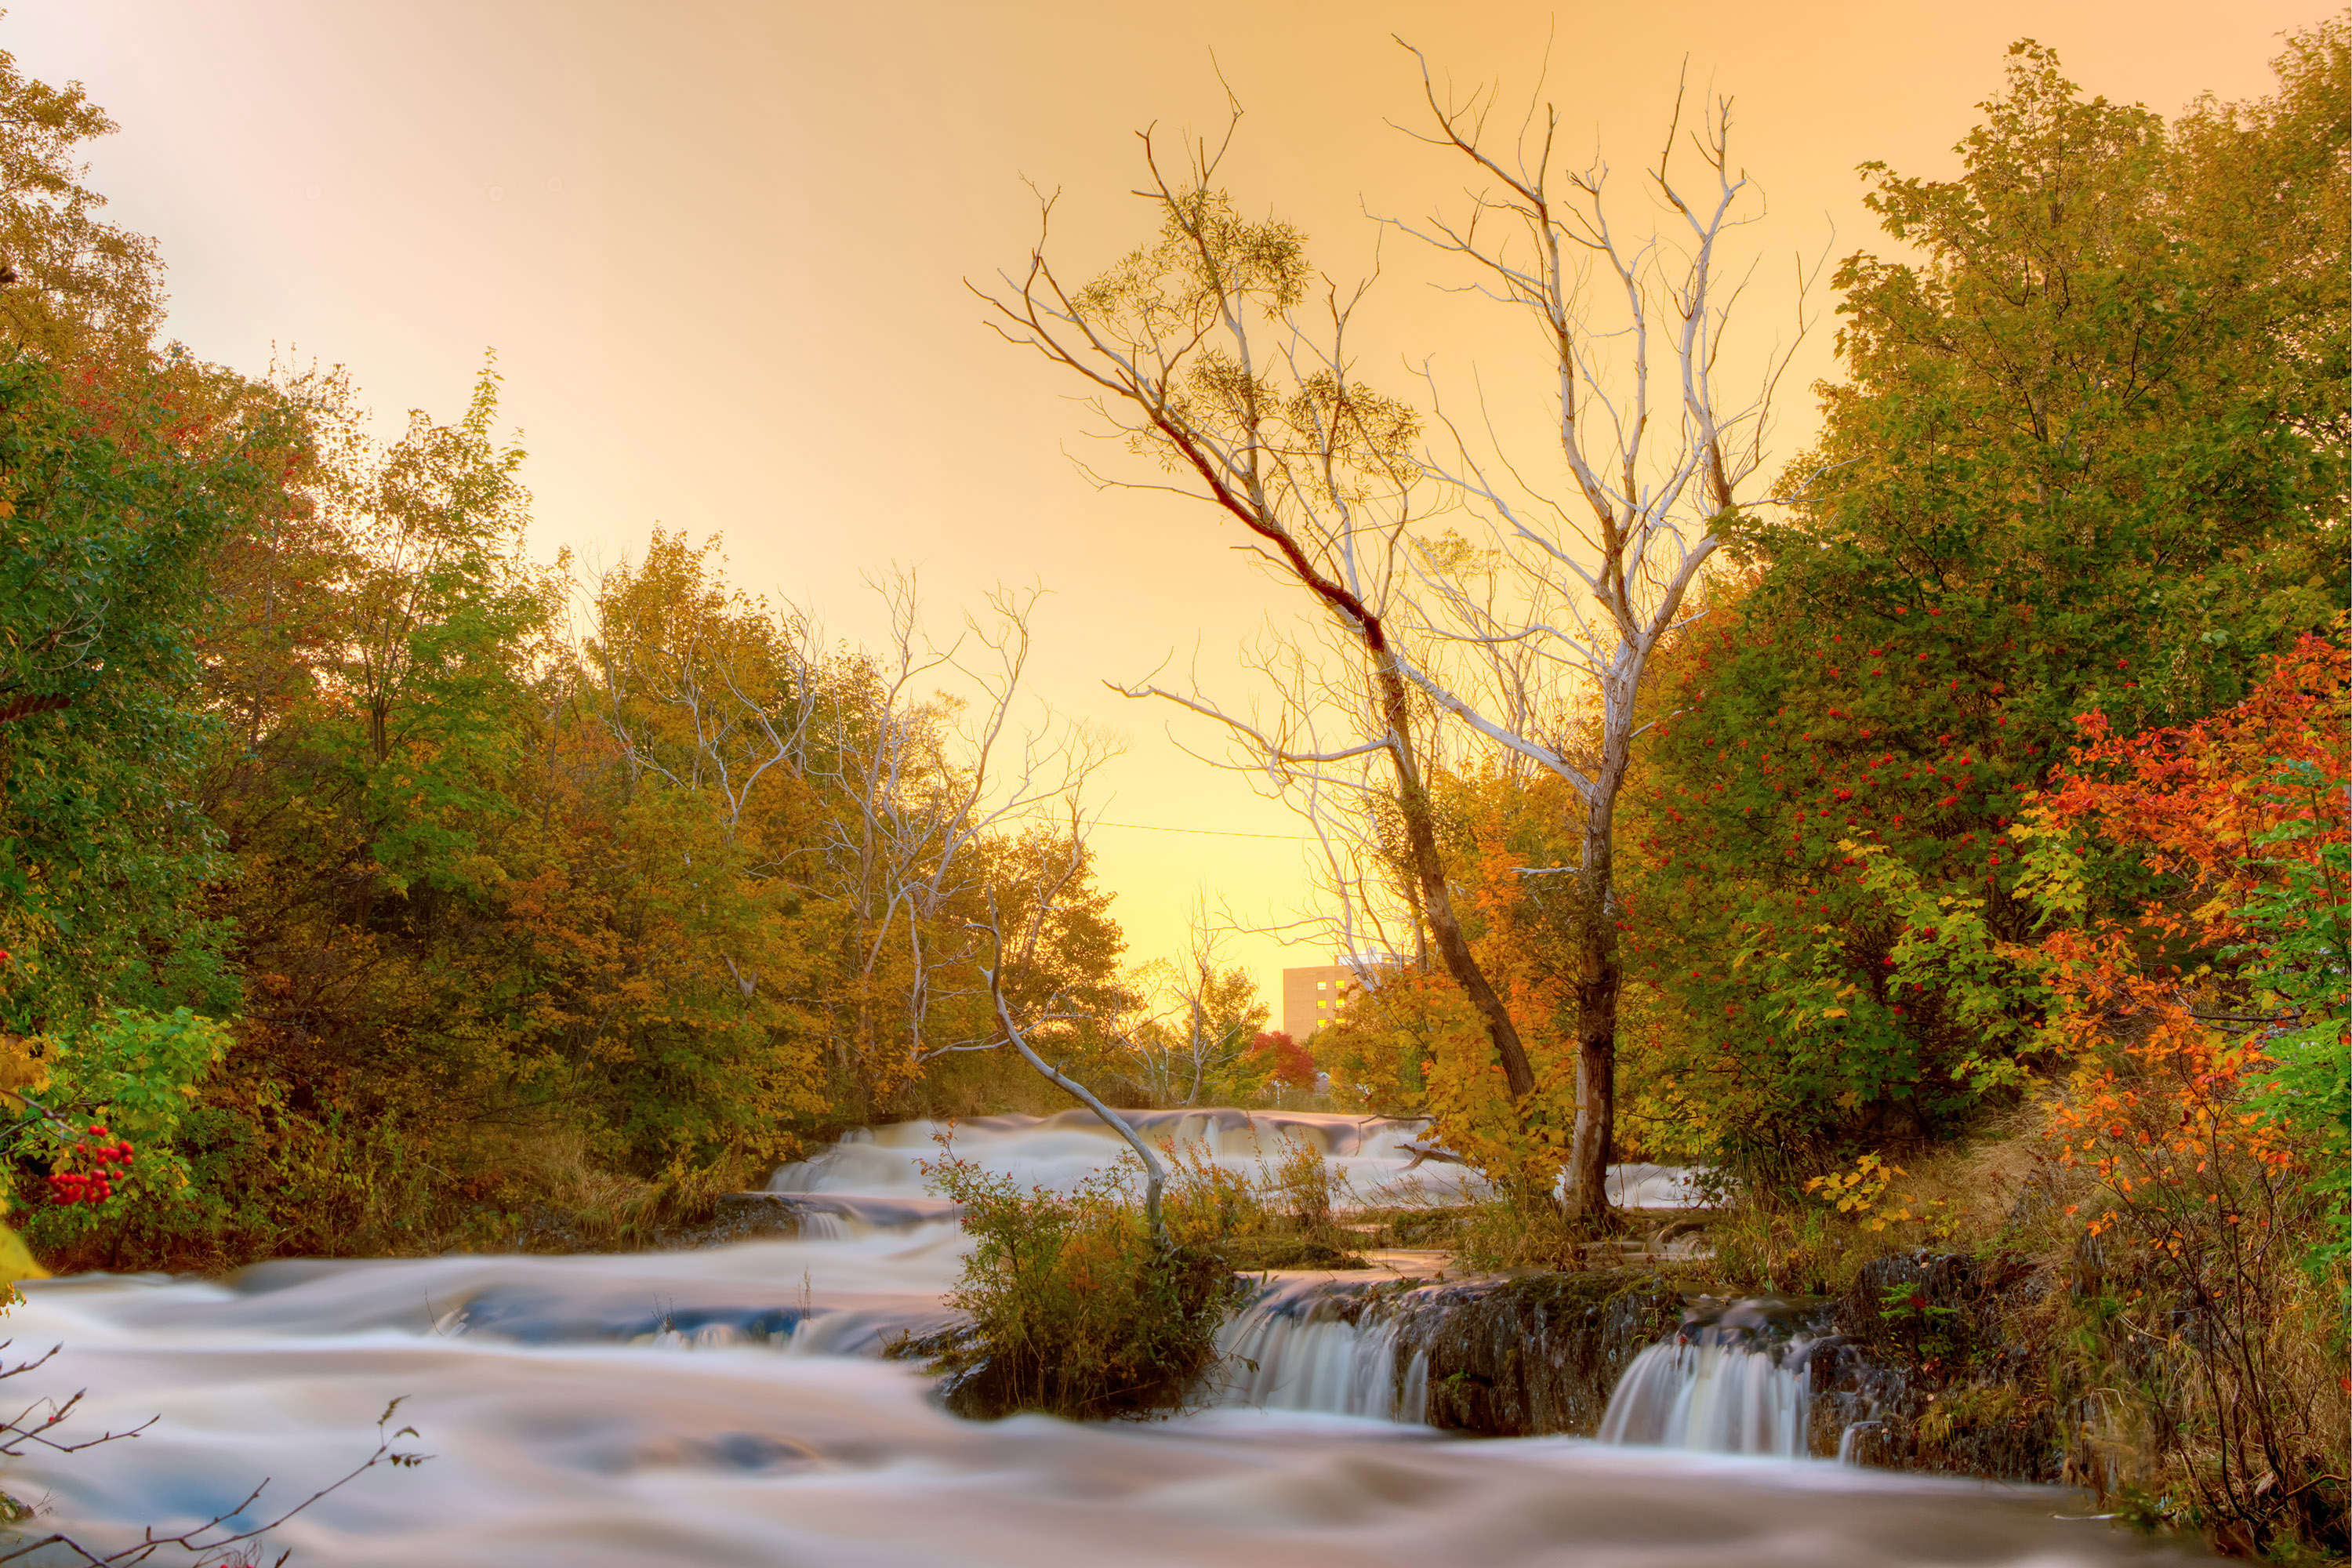 Autumn River, Autumn, Stone, River, Rock, HQ Photo